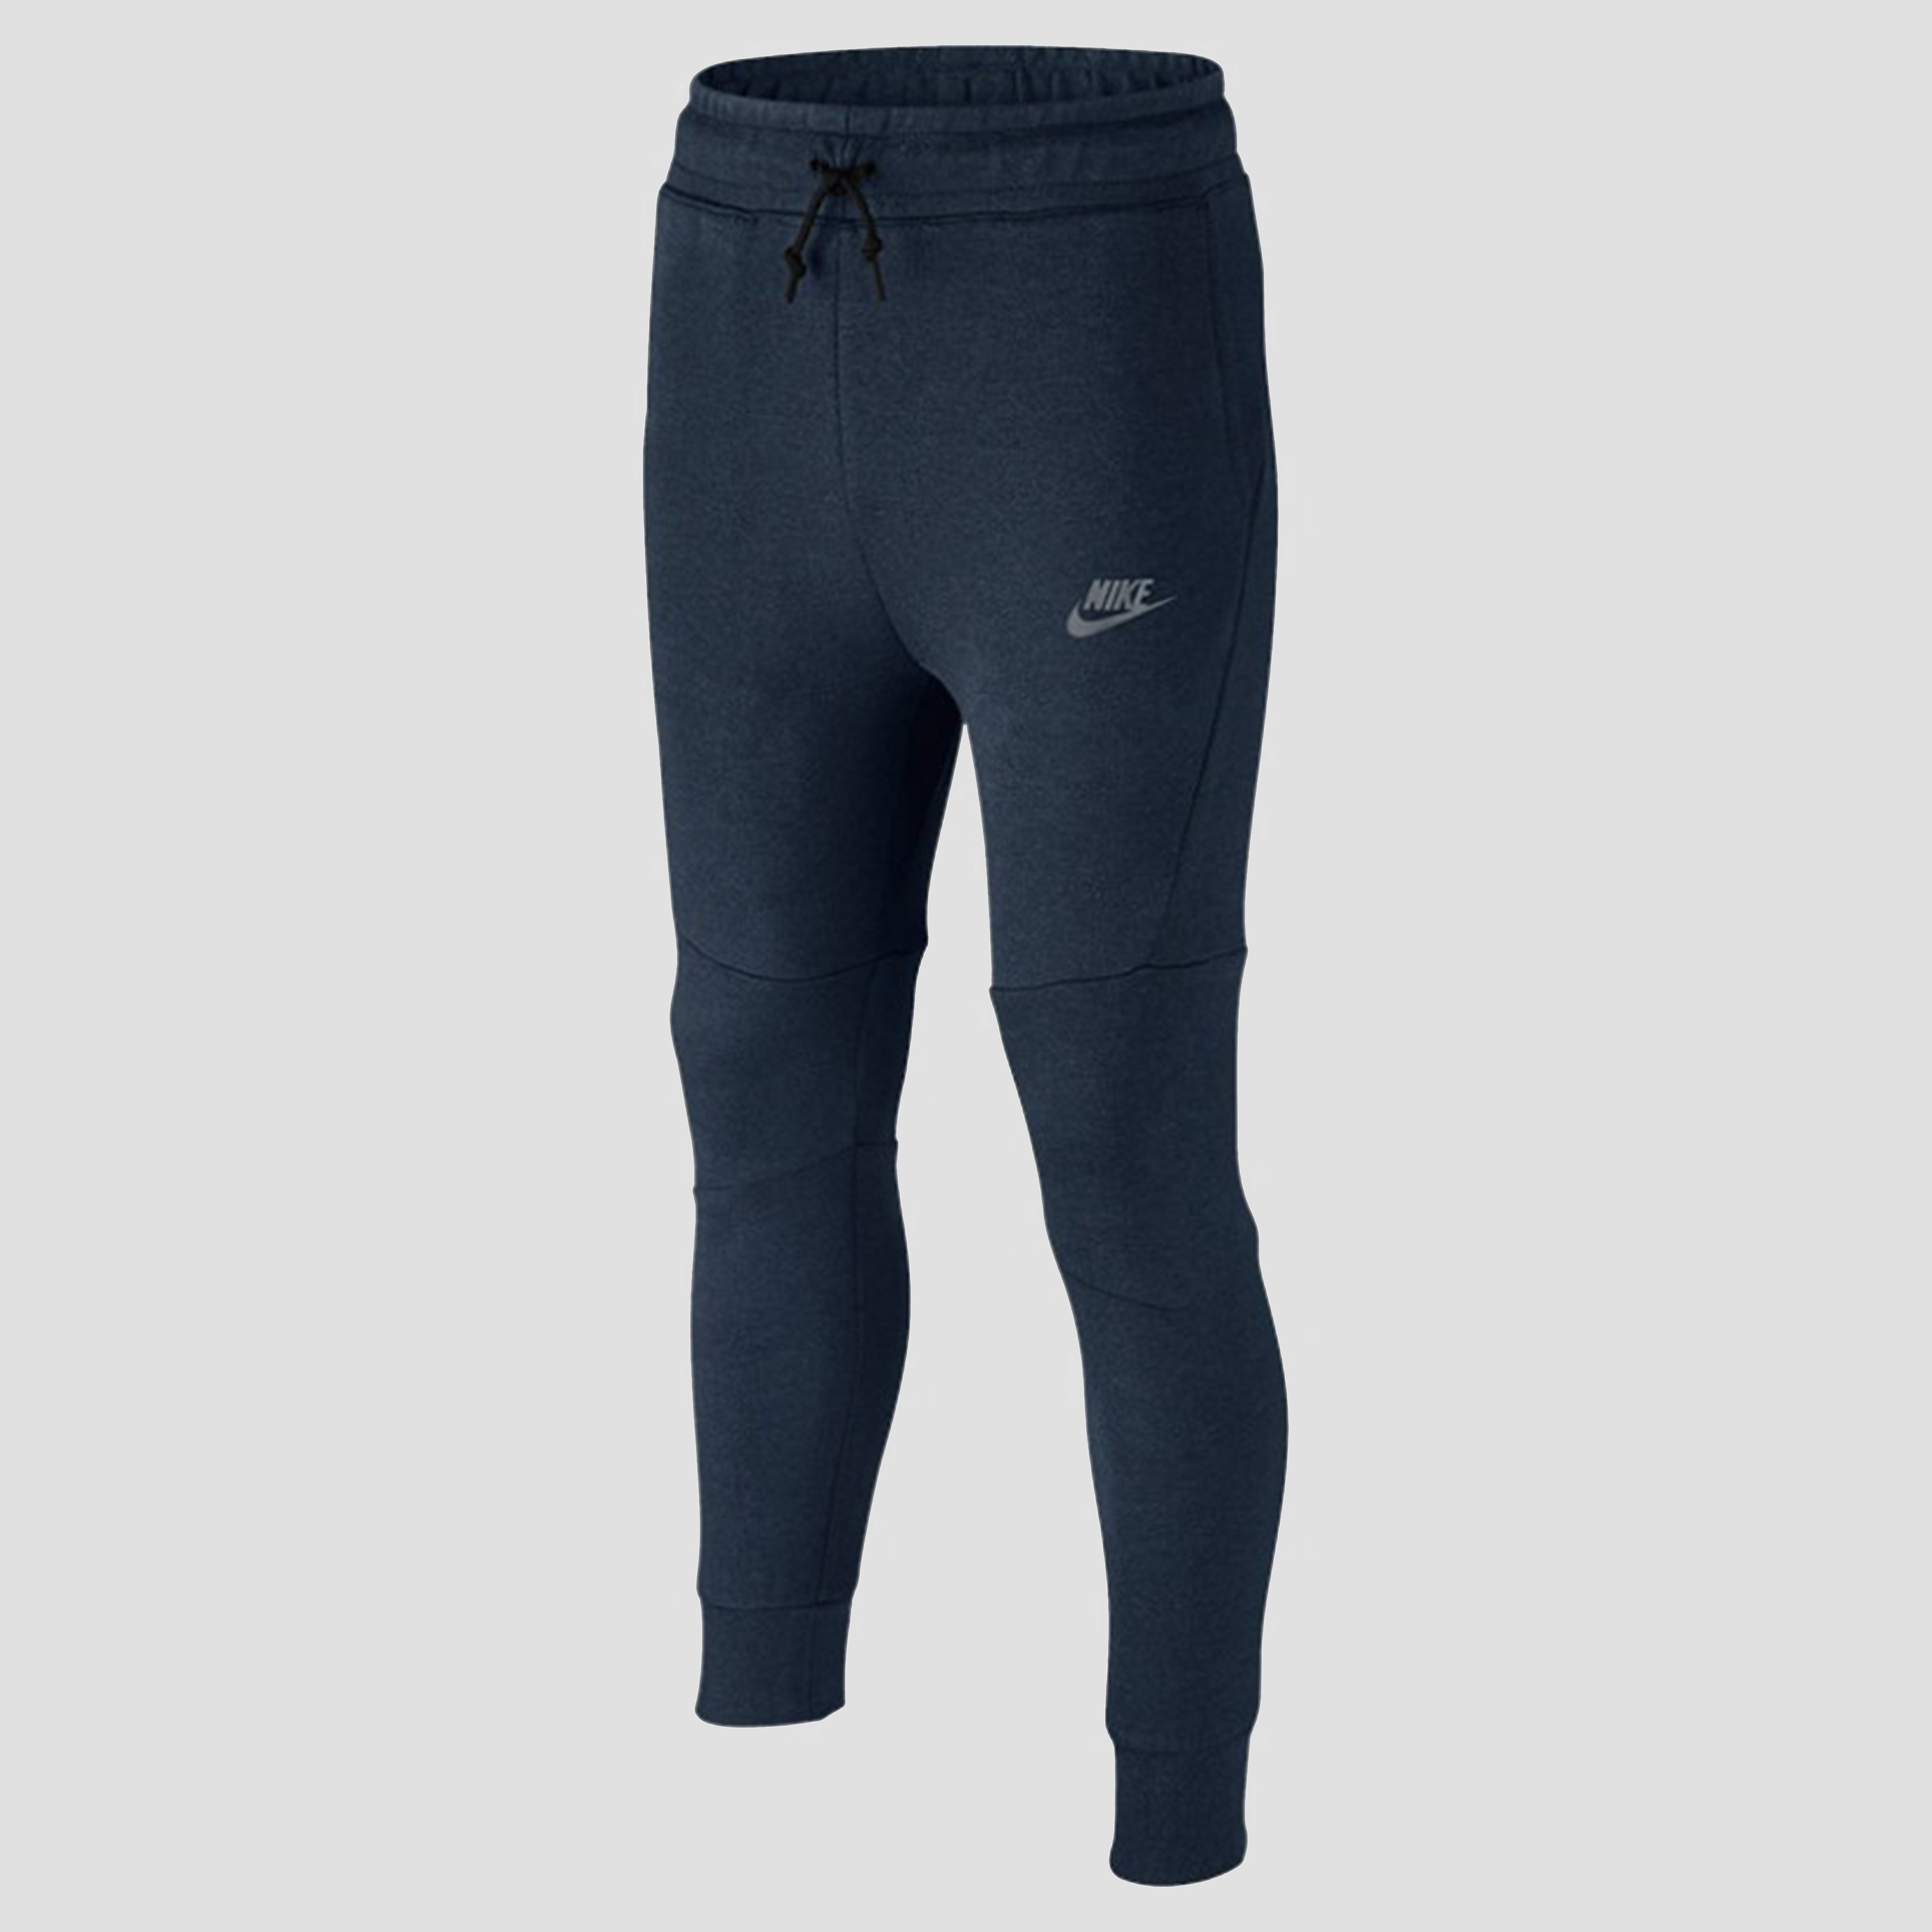 NIKE SPORTSWEAR TECH FLEECE JOGGINGBROEK BLAUW KINDEREN